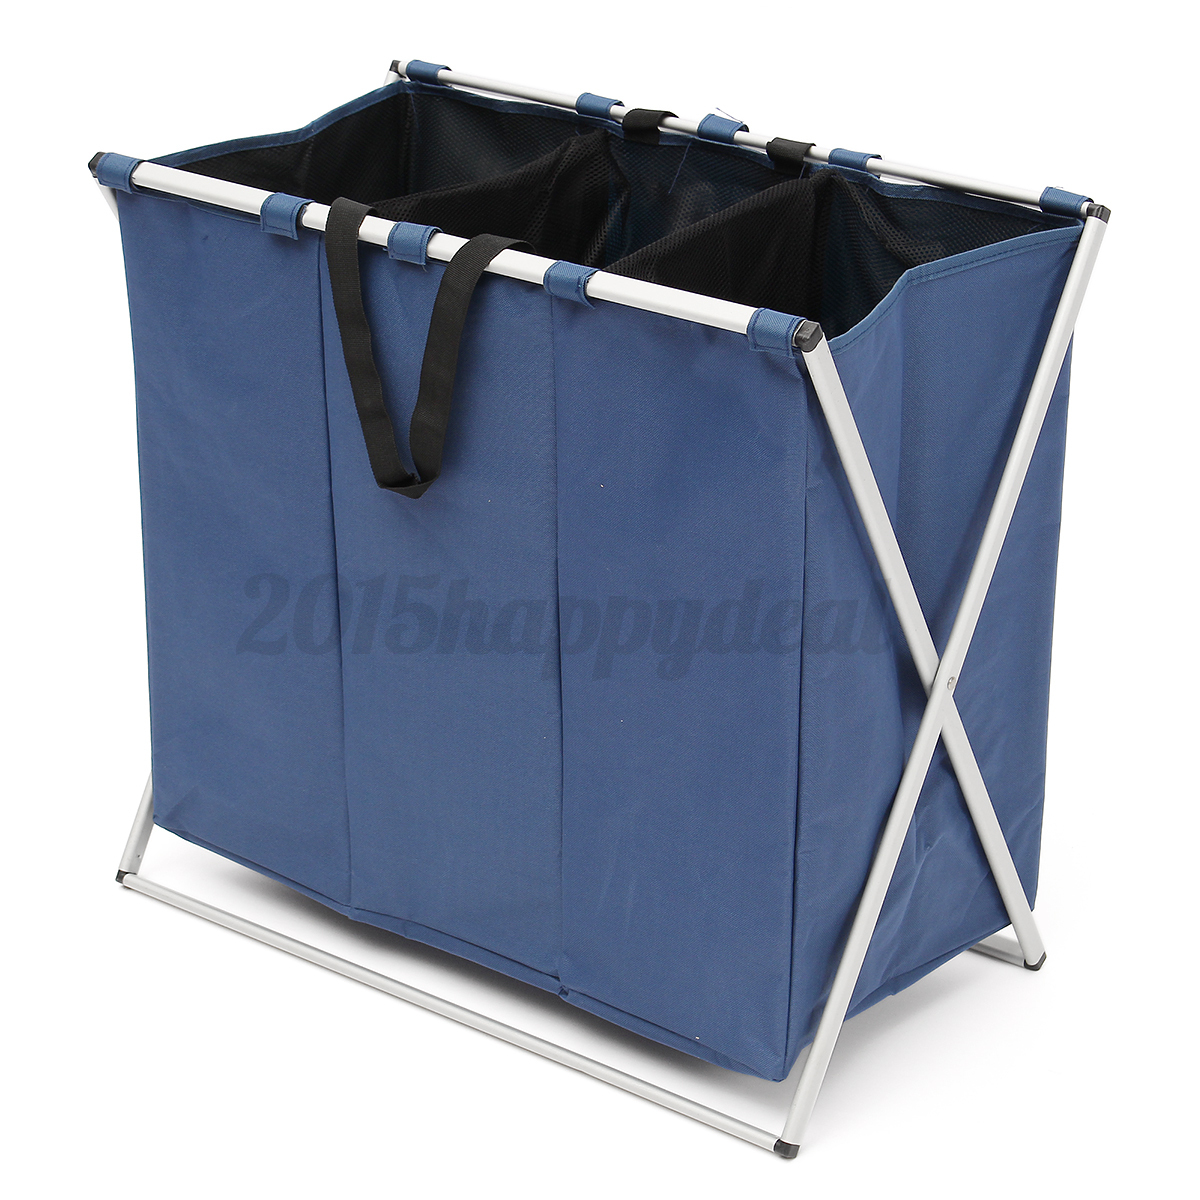 Large washing bag dirty clothes folding laundry storage basket bin hamper 3 bags - Hamper for dirty clothes ...